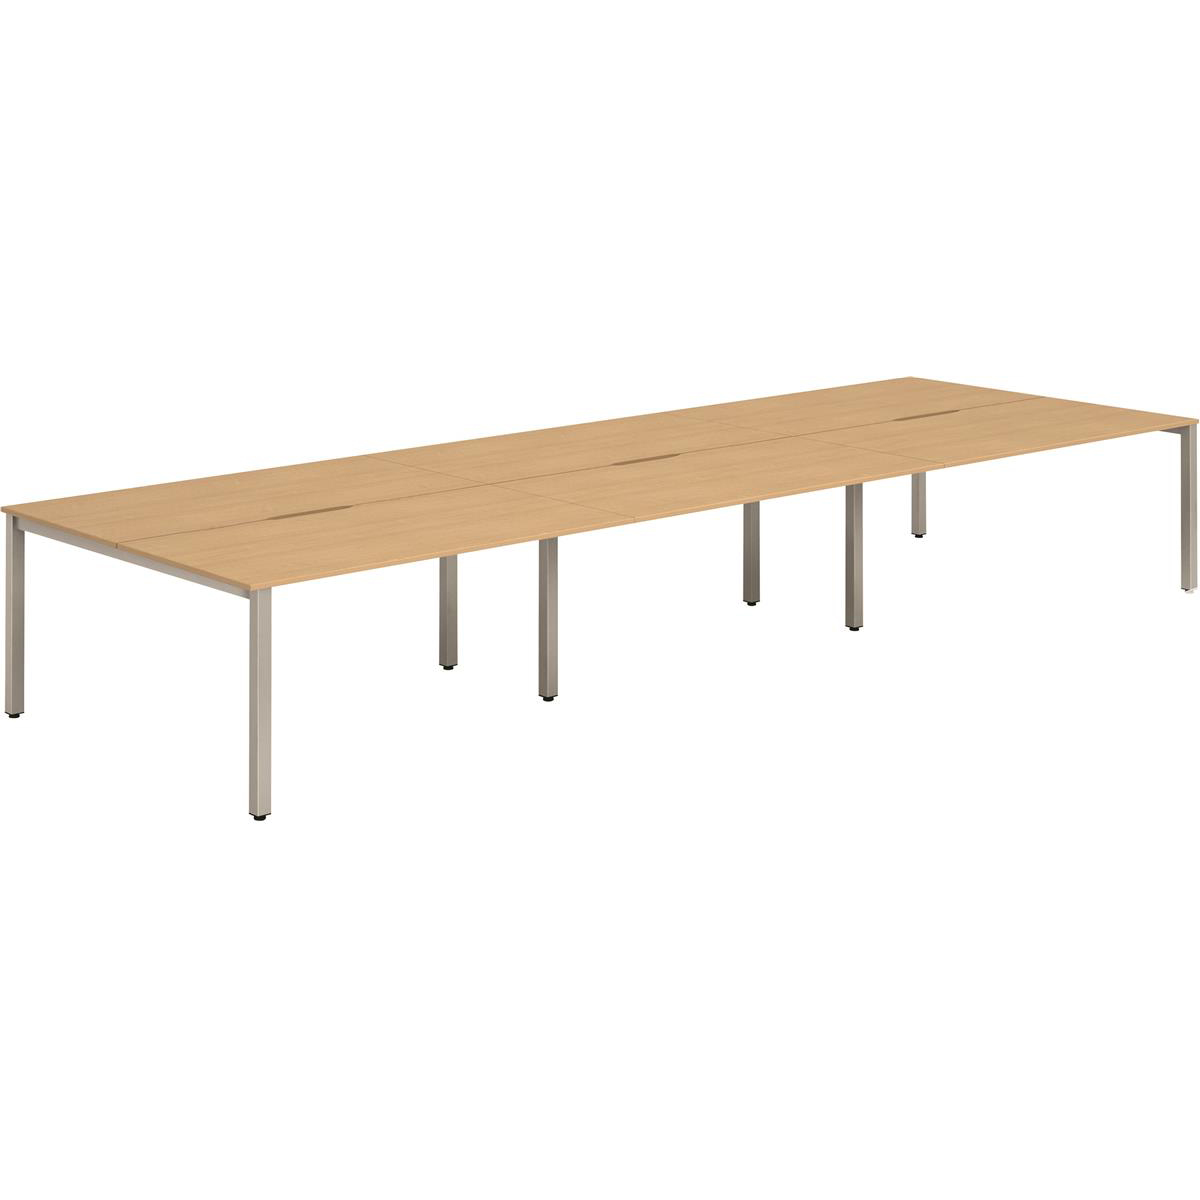 Trexus Bench Desk 6 Person Back to Back Configuration Silver Leg 2800x1600mm Beech Ref BE297